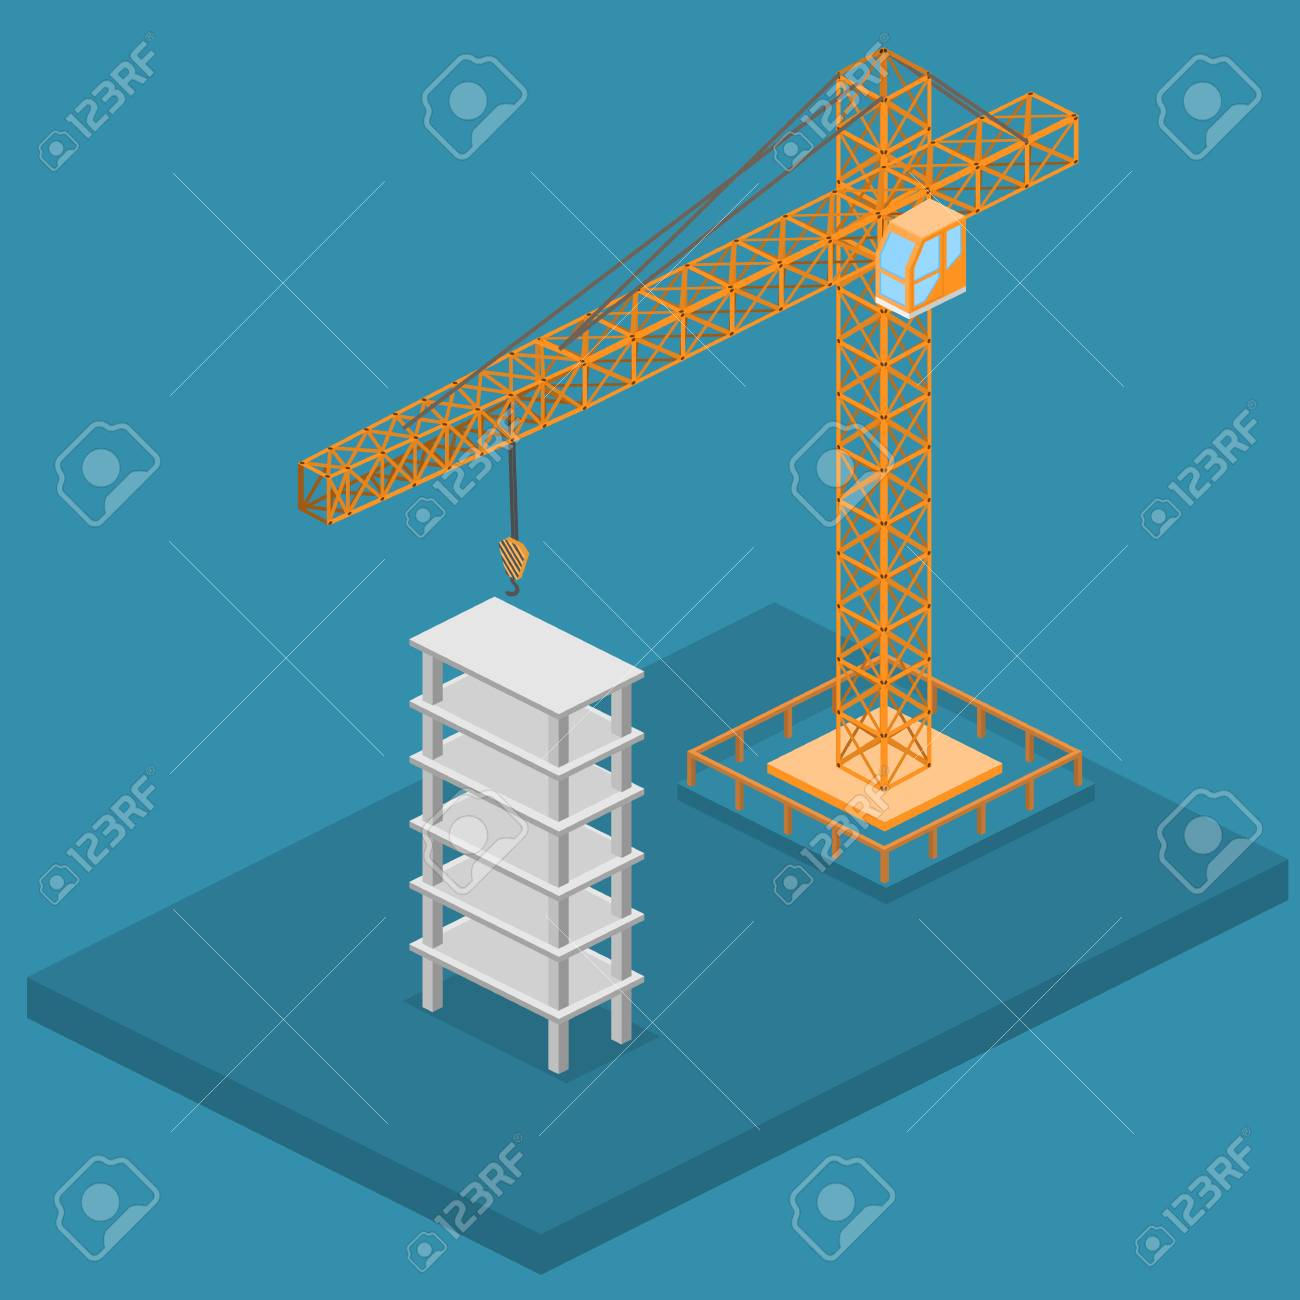 hight resolution of isometric 3d vector illustration truck crane construction construction of a multistory building stock vector